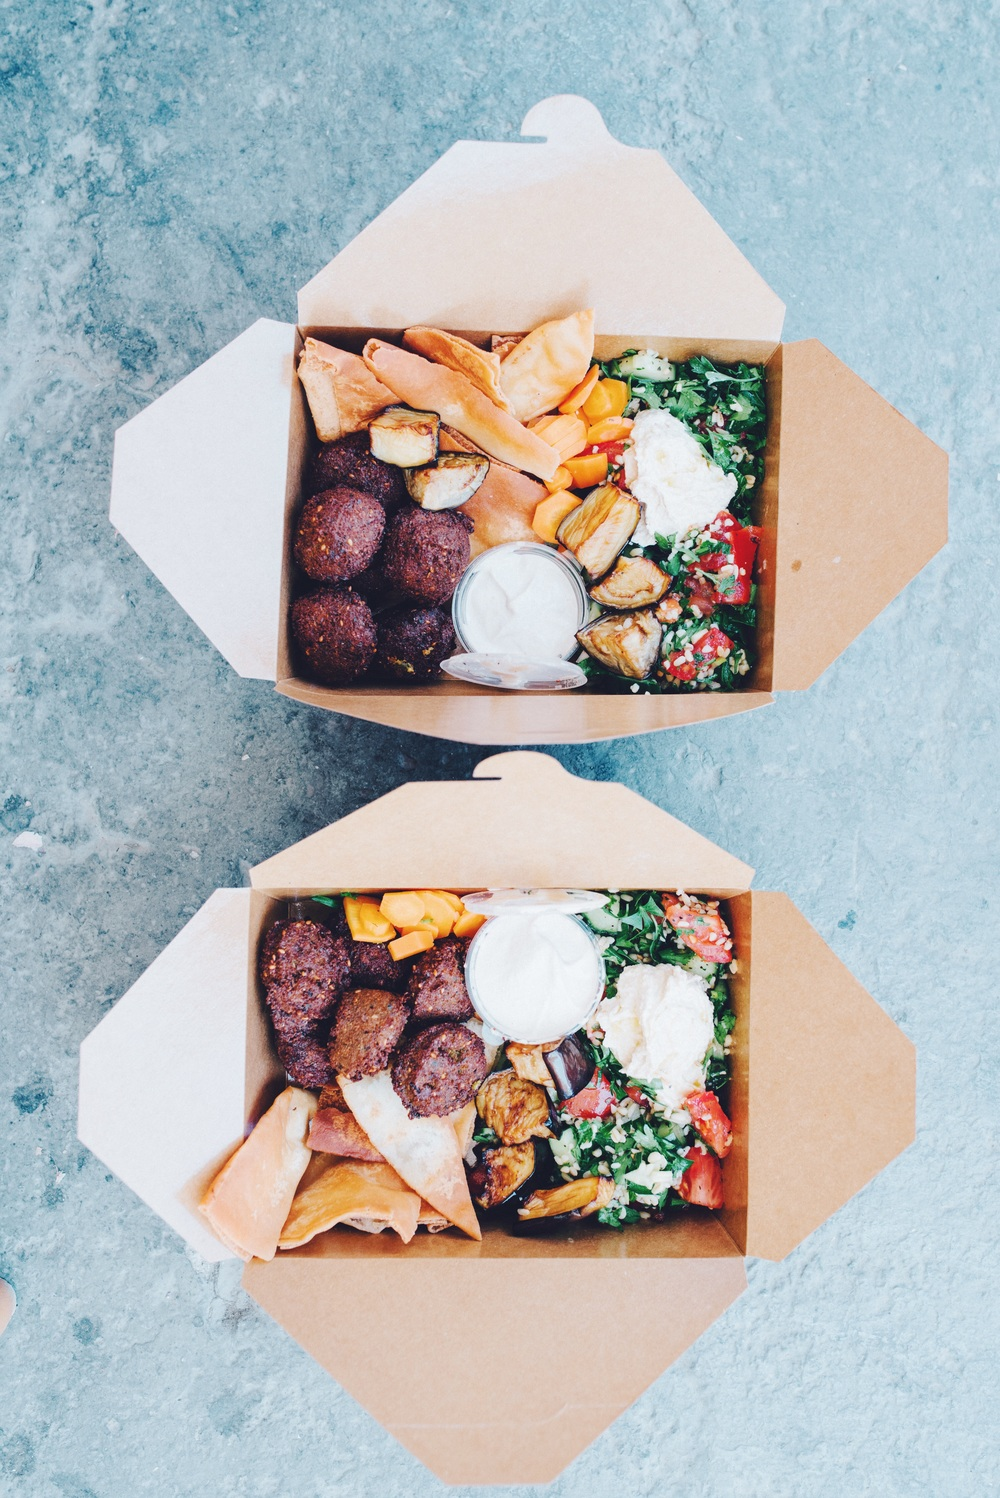 Lunch at falafel land: falafel boxes